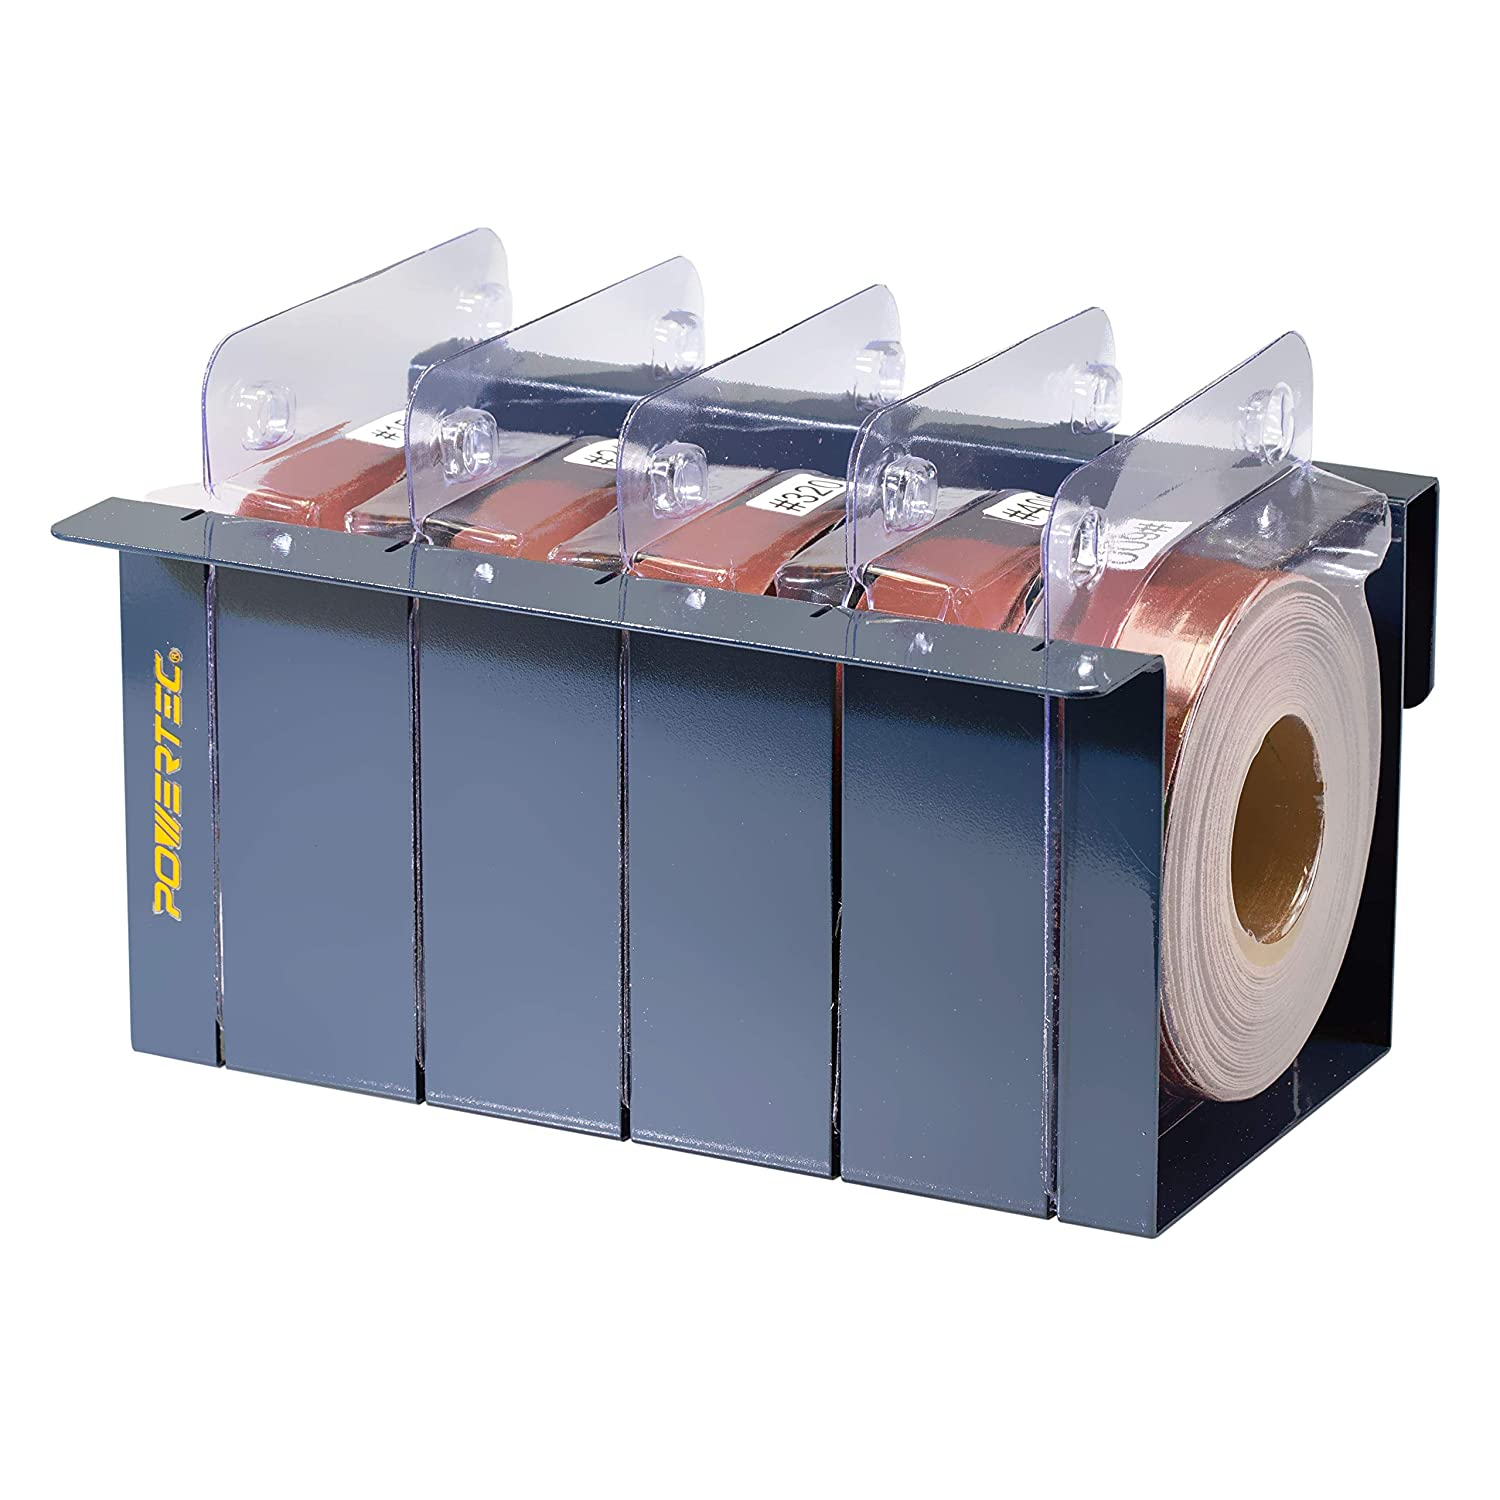 320 Emery Paper Assortment  Easy Cut 5 Roll Sand Paper Dispenser and Tear Off Bar 240 Grit sizes 150 600 POWERTEC 4RA2101 Sandpaper Multi Roll Pack in Sturdy Metal Box  AO Abrasive 400